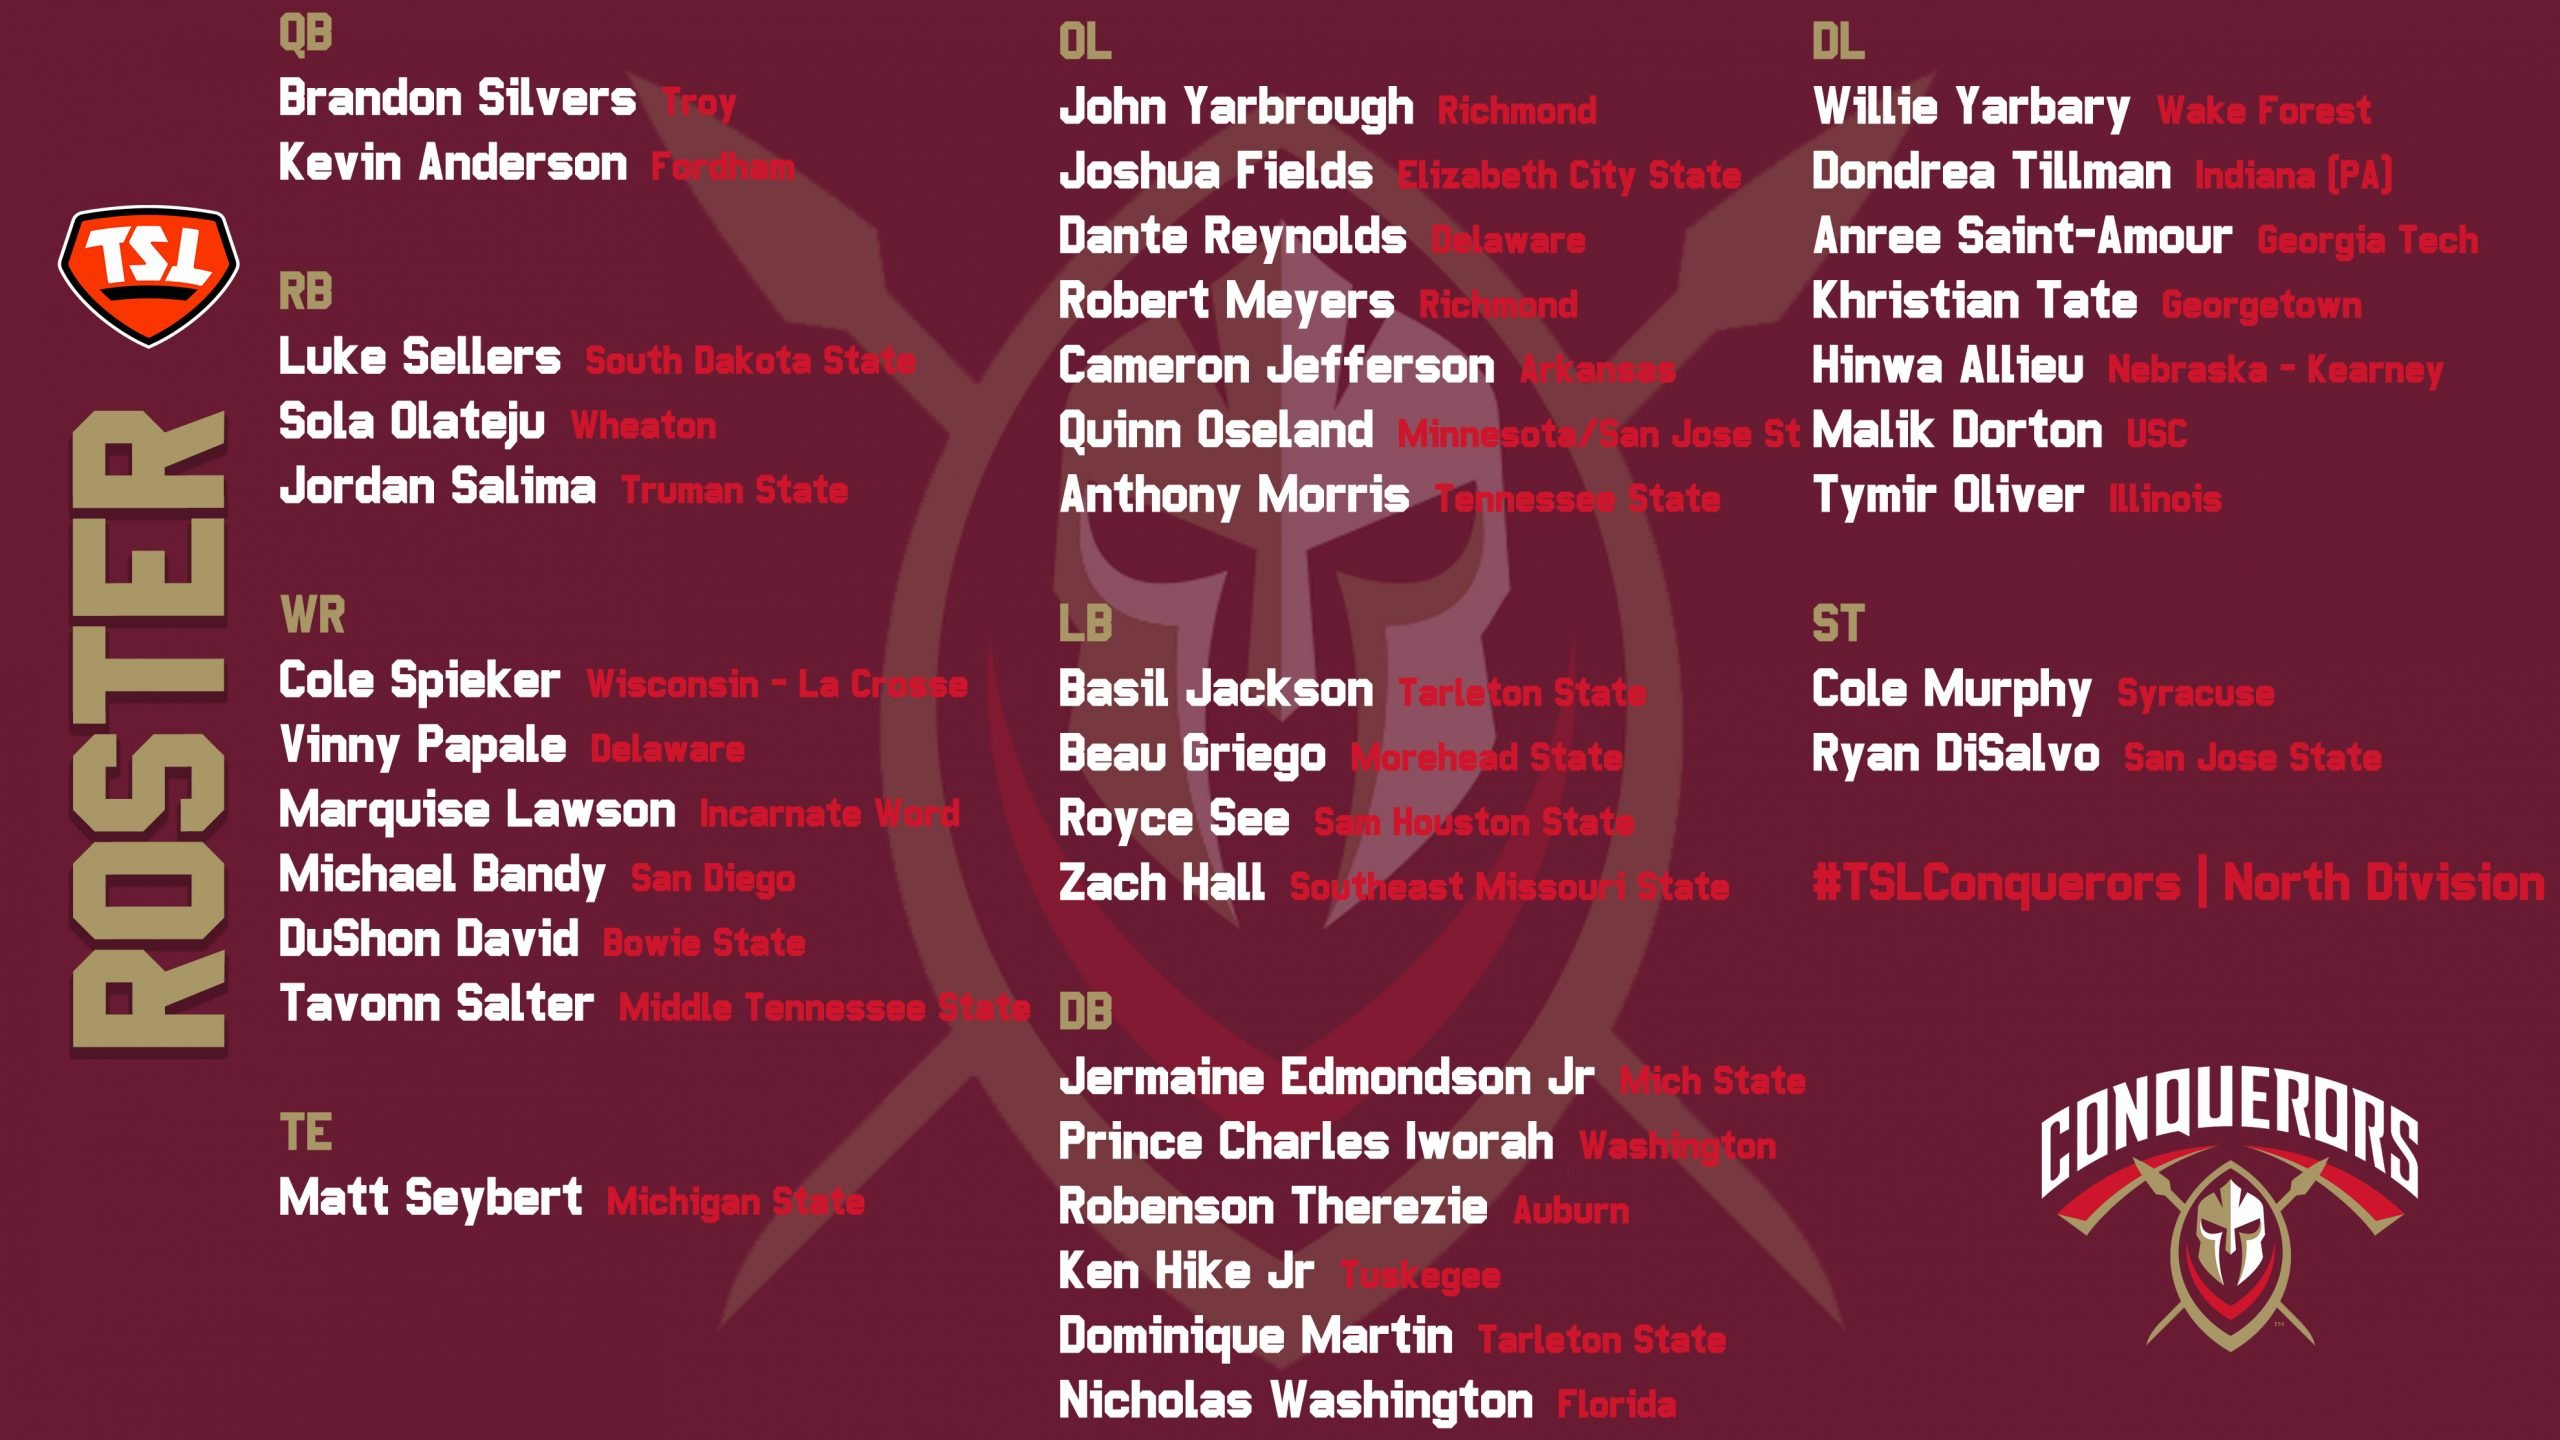 The Spring League Conquerors 2021 Roster